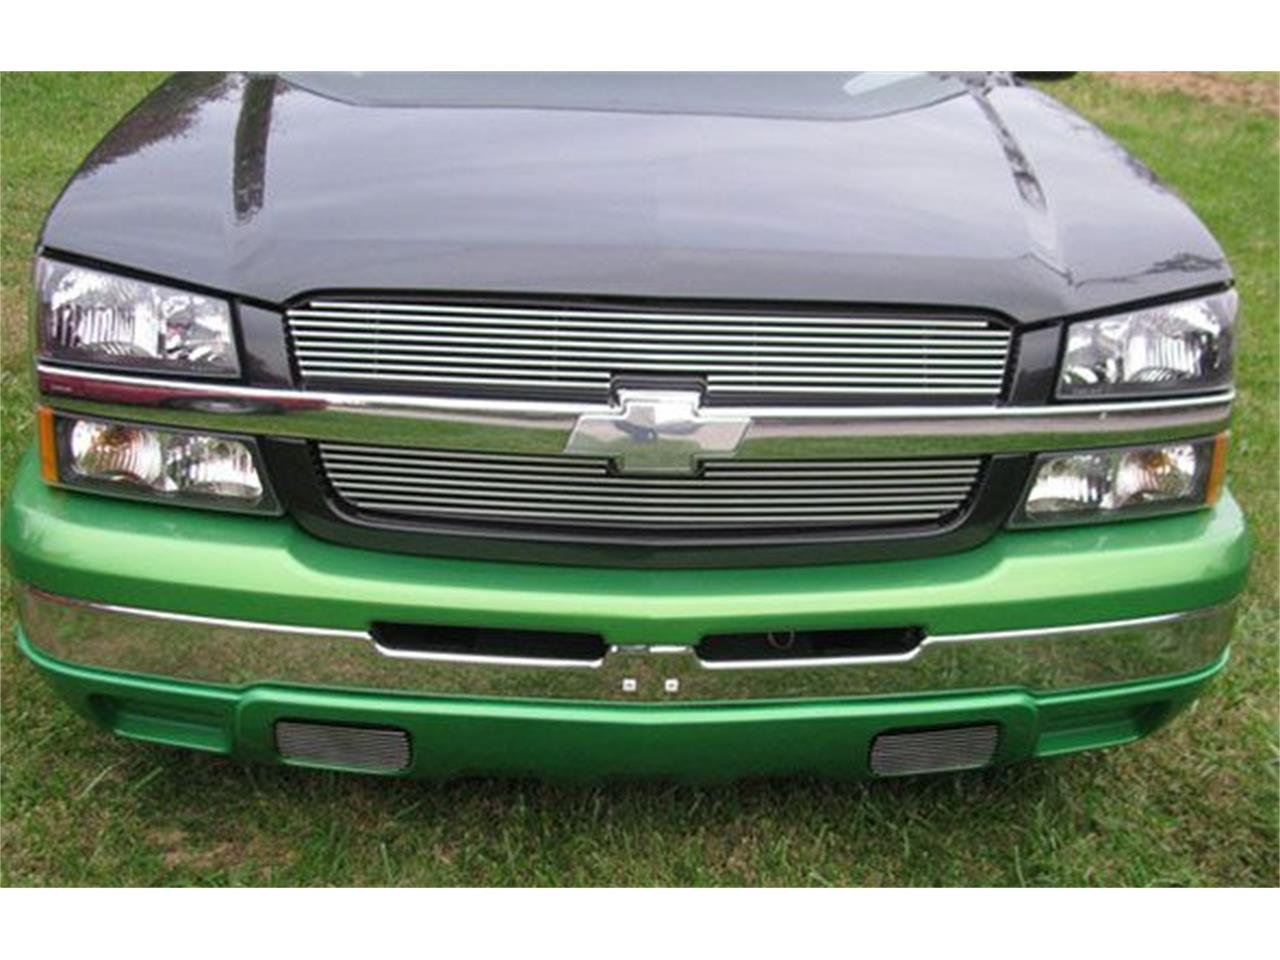 2008 Chevrolet Silverado (CC-1211737) for sale in Cadillac, Michigan